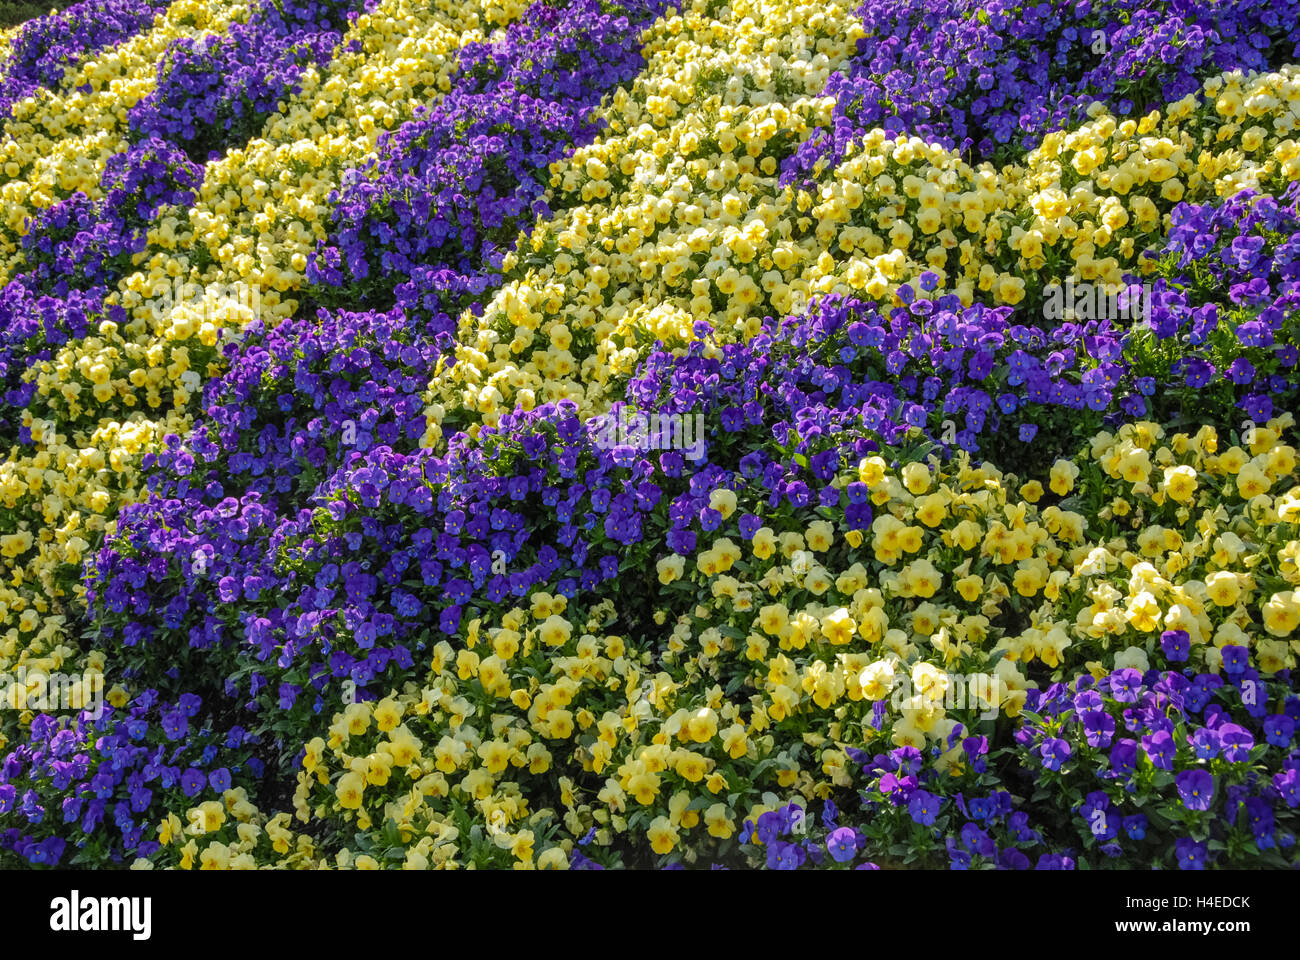 Vivid Yellow And Purple Flowers In A Geometric Landscape Design